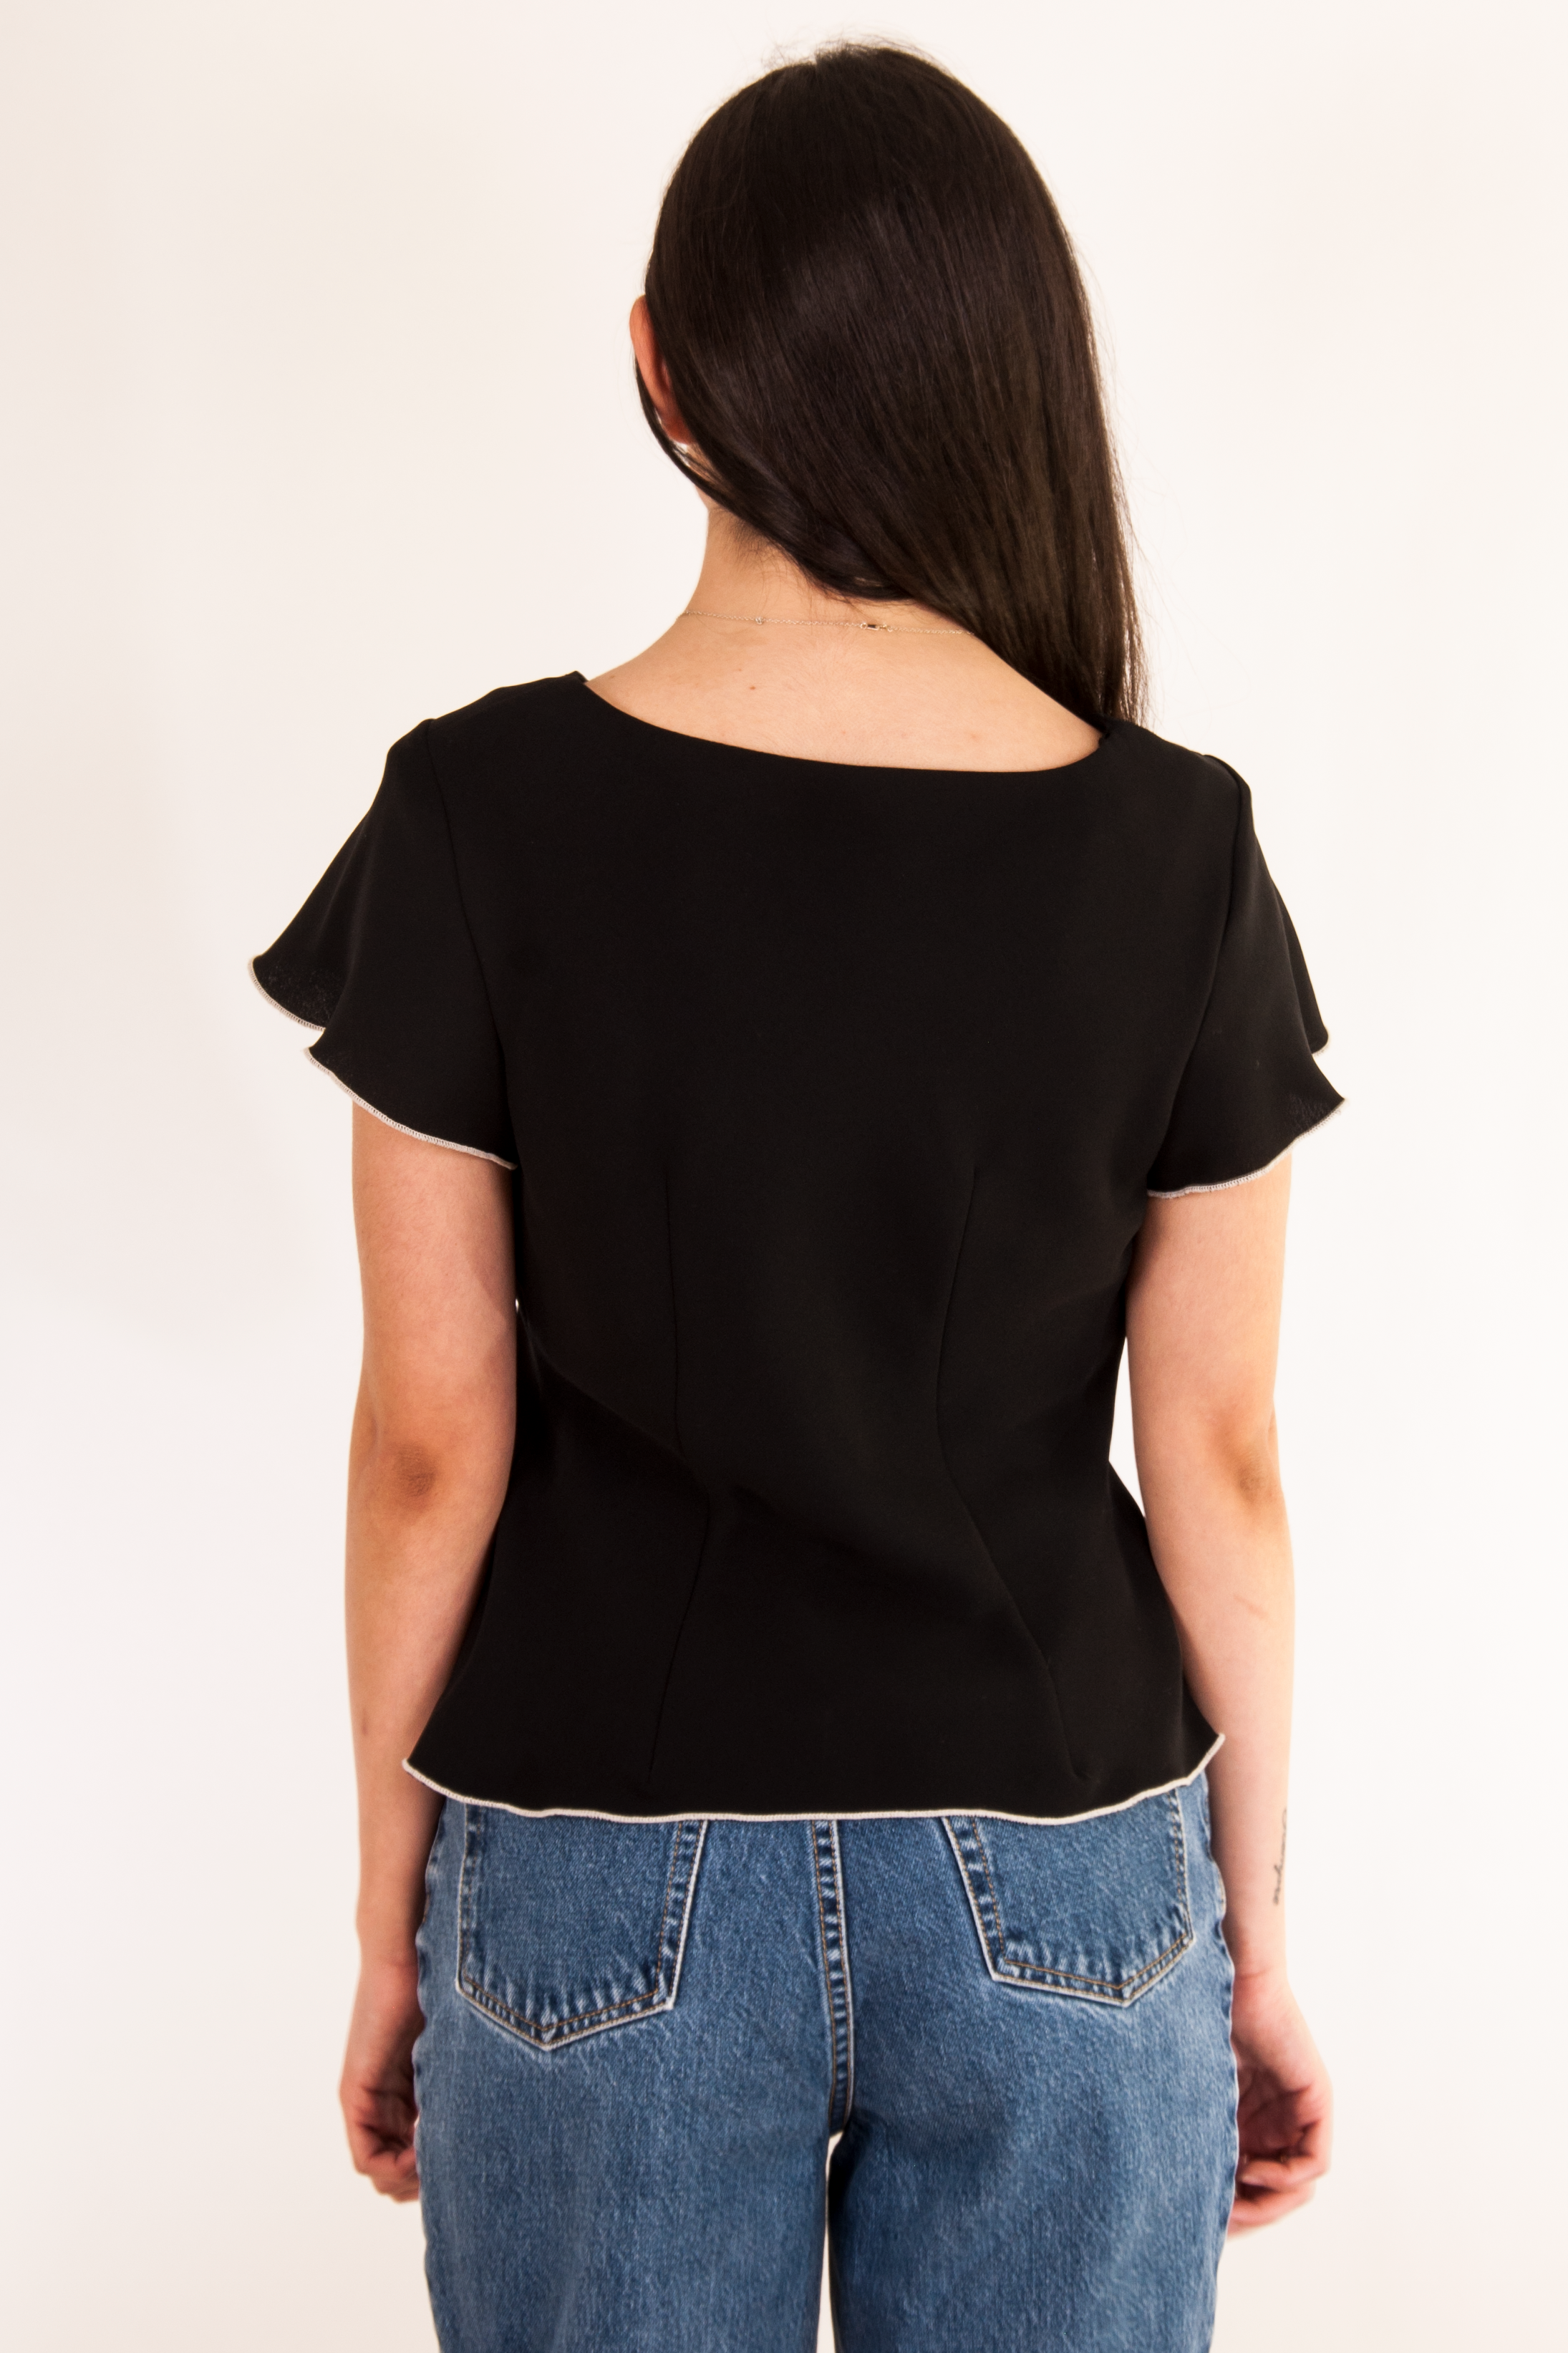 black vintage v-neck top with white trim